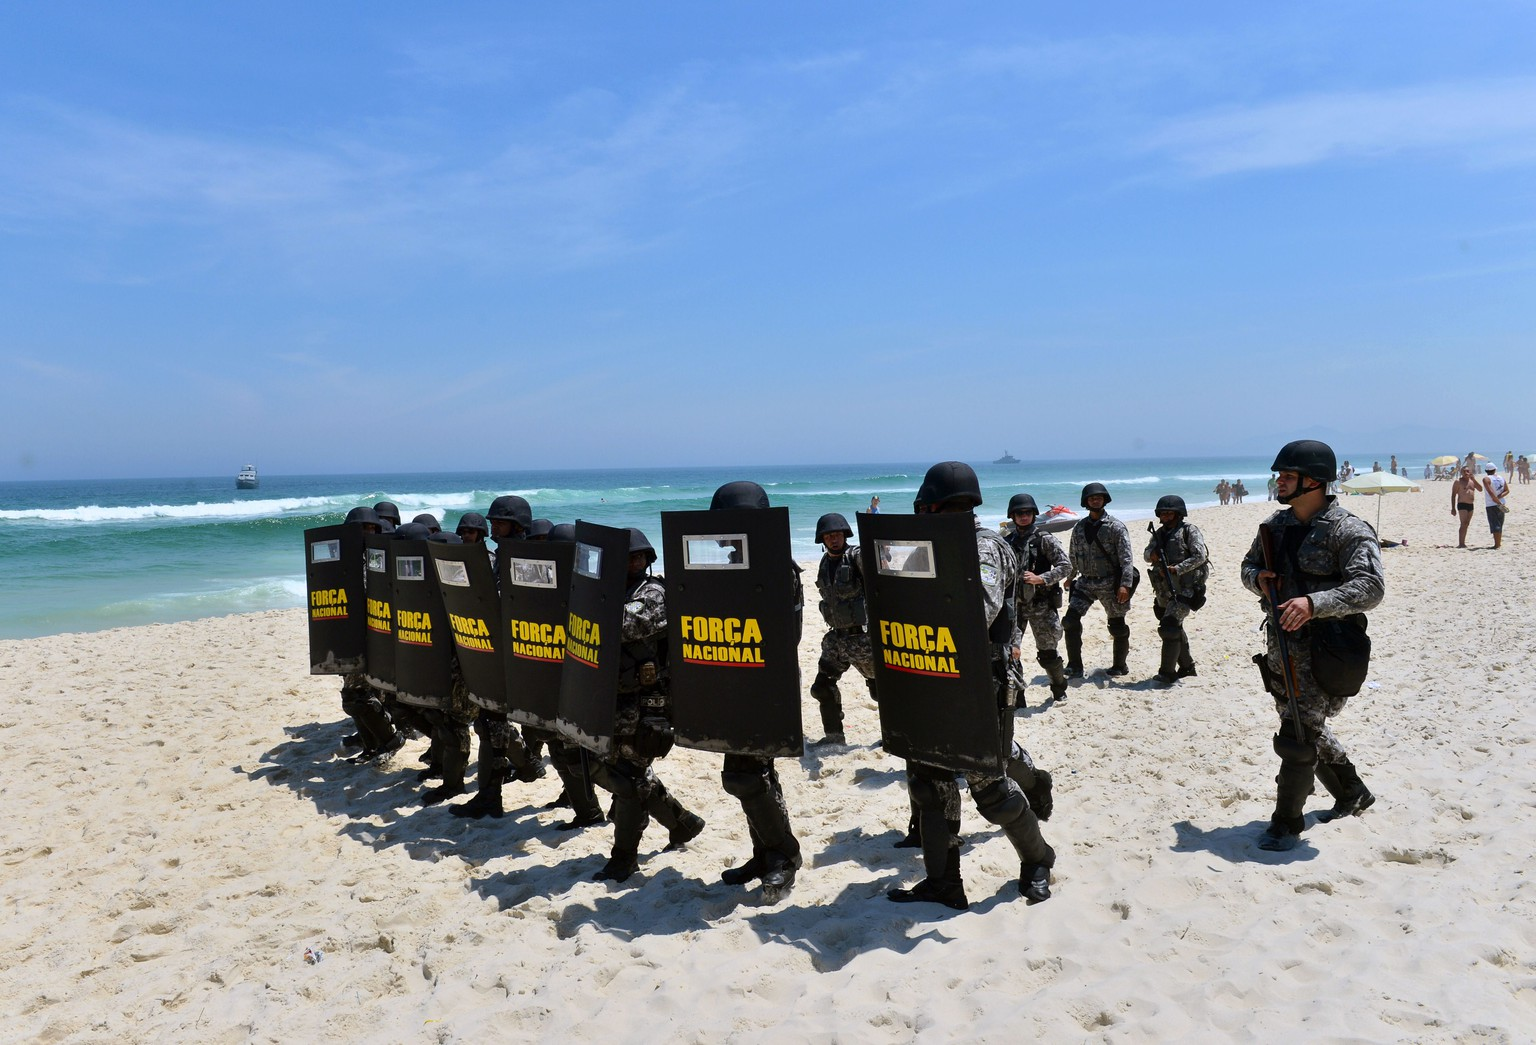 Brazil's Forca Nacional security personnel in riot gear charge on demonstrators at the beach in front of the hotel where Brazil's National Petroleum Agency (ANP) will auction drilling rights to one of the world's largest offshore oil discoveries, in Barra de Tijuca, Rio de Janeiro, Brazil on October 21, 2013. The security plan for the upcoming FIFA World Cup covers from a terrorist attack to a fight between football fans, though street protests continue to be the main worry for authorities.AFP PHOTO/CHRISTOPHE SIMON